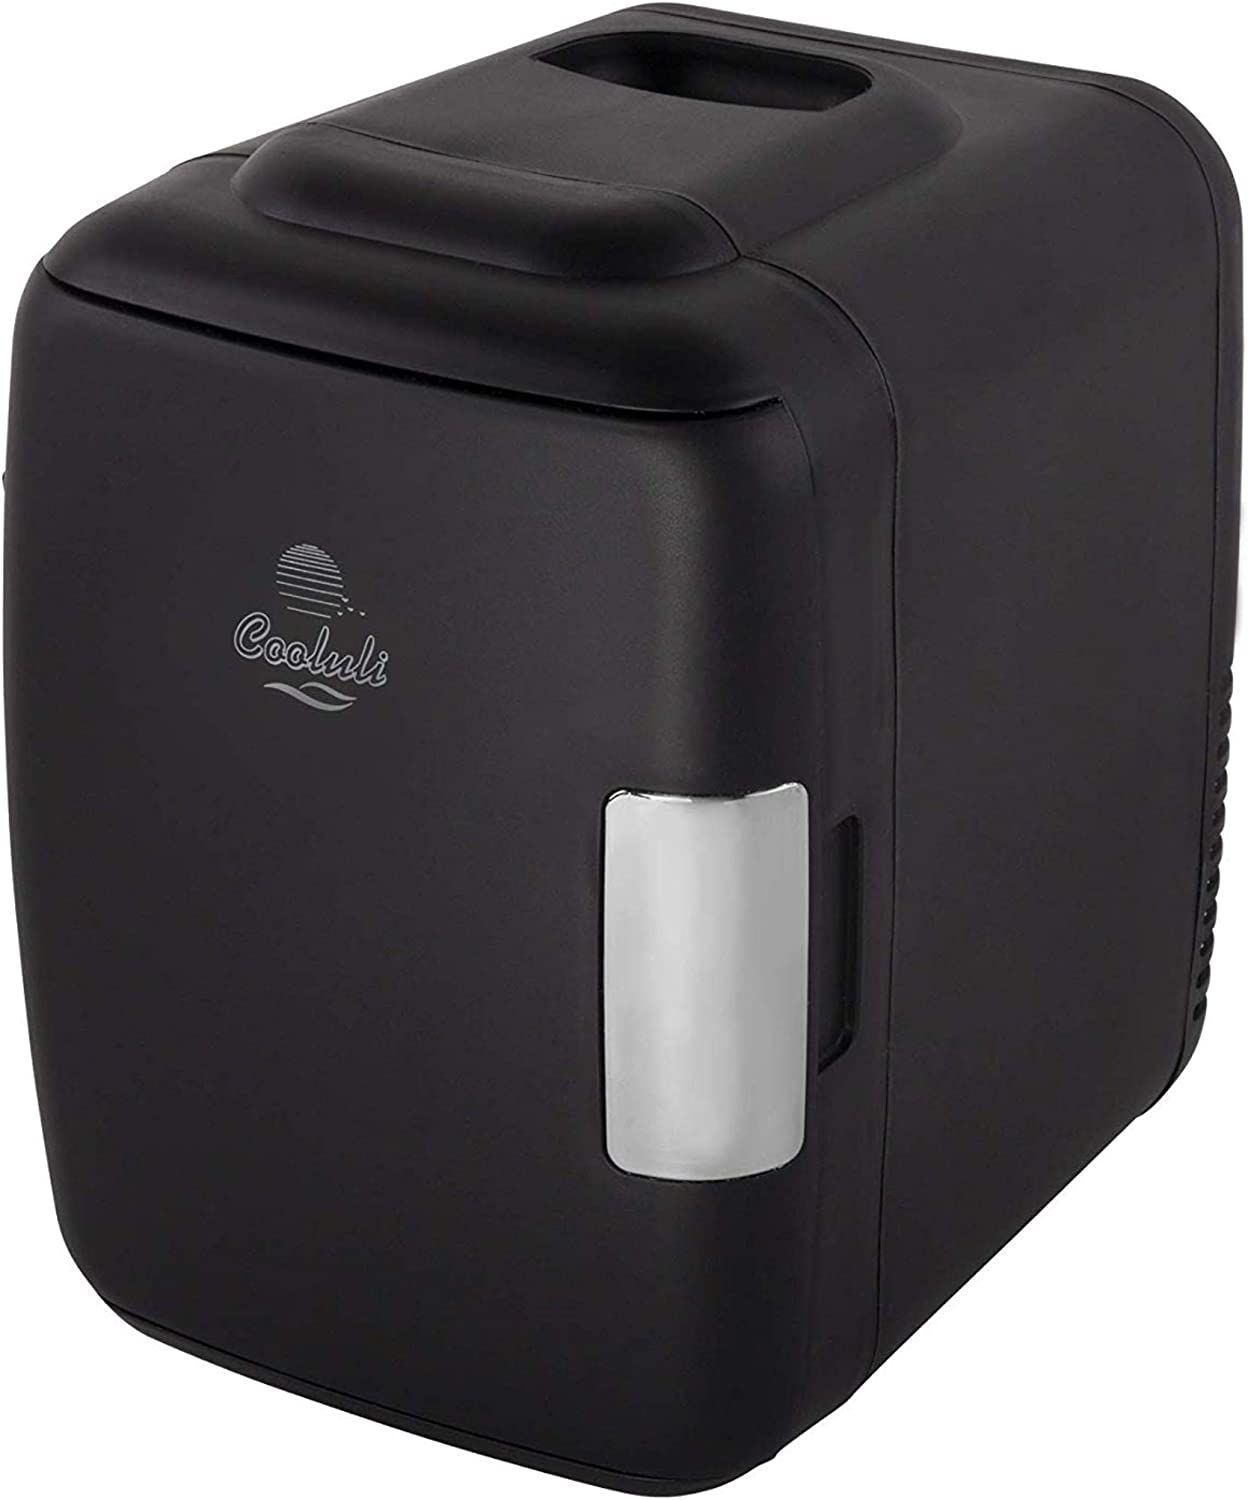 Cooluli Classic 4-liter Compact Cooler Warmer Mini Fridge for Cars, Road Trips, Homes, Offices and Dorms Black